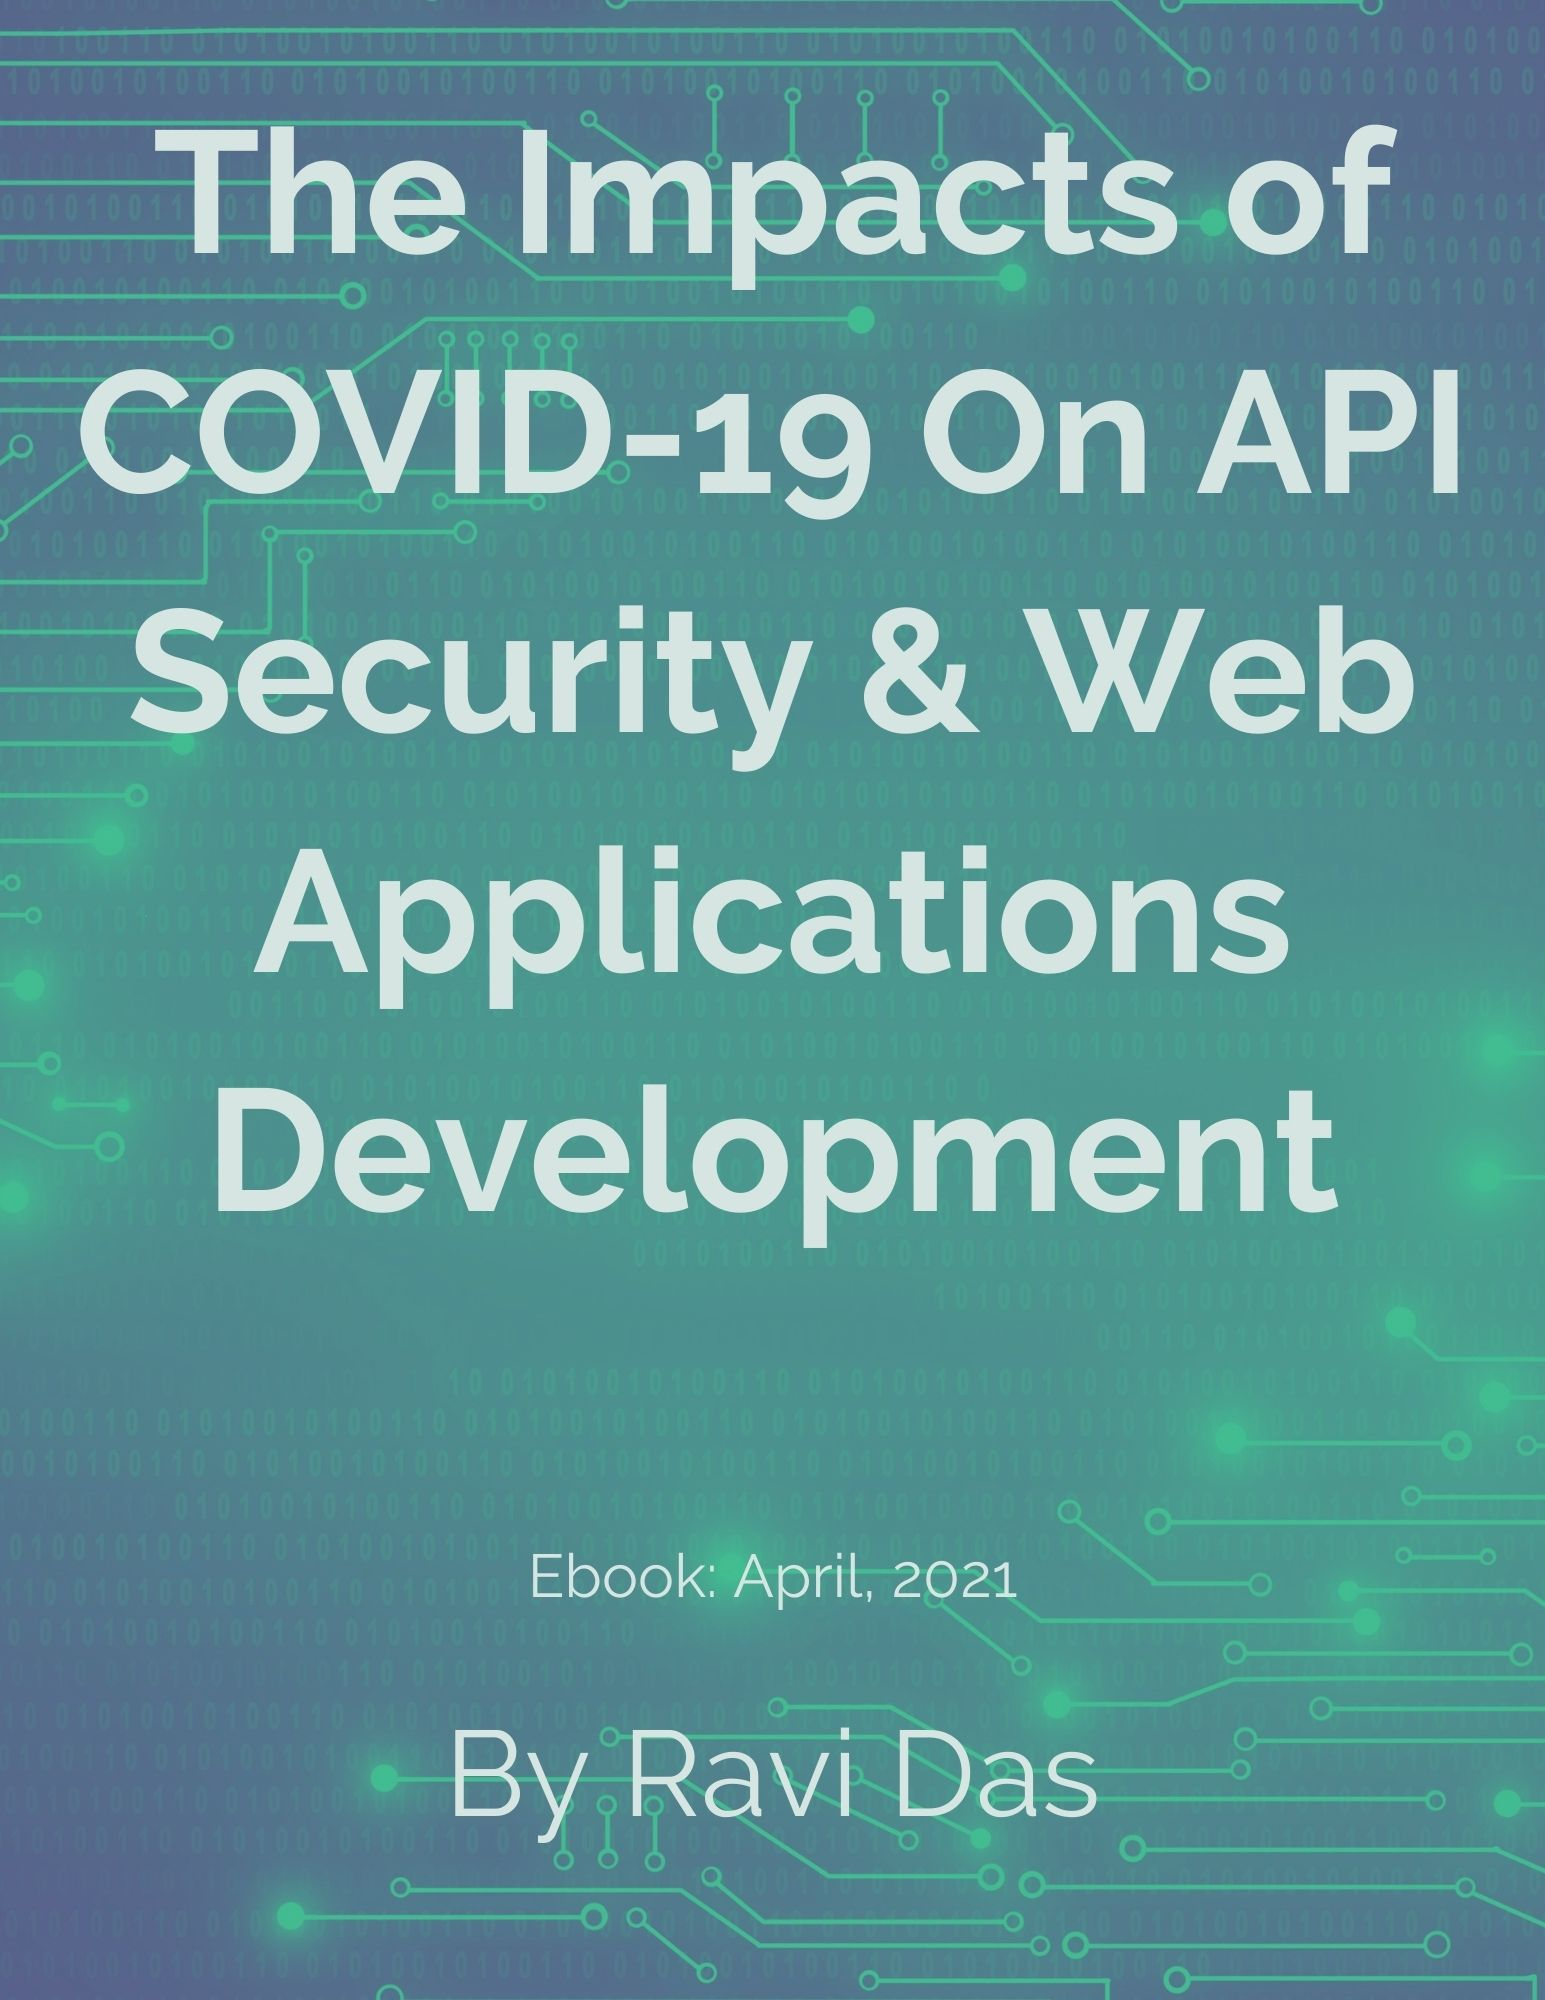 The Impacts of COVID-19 on API Security & Web Applications Development